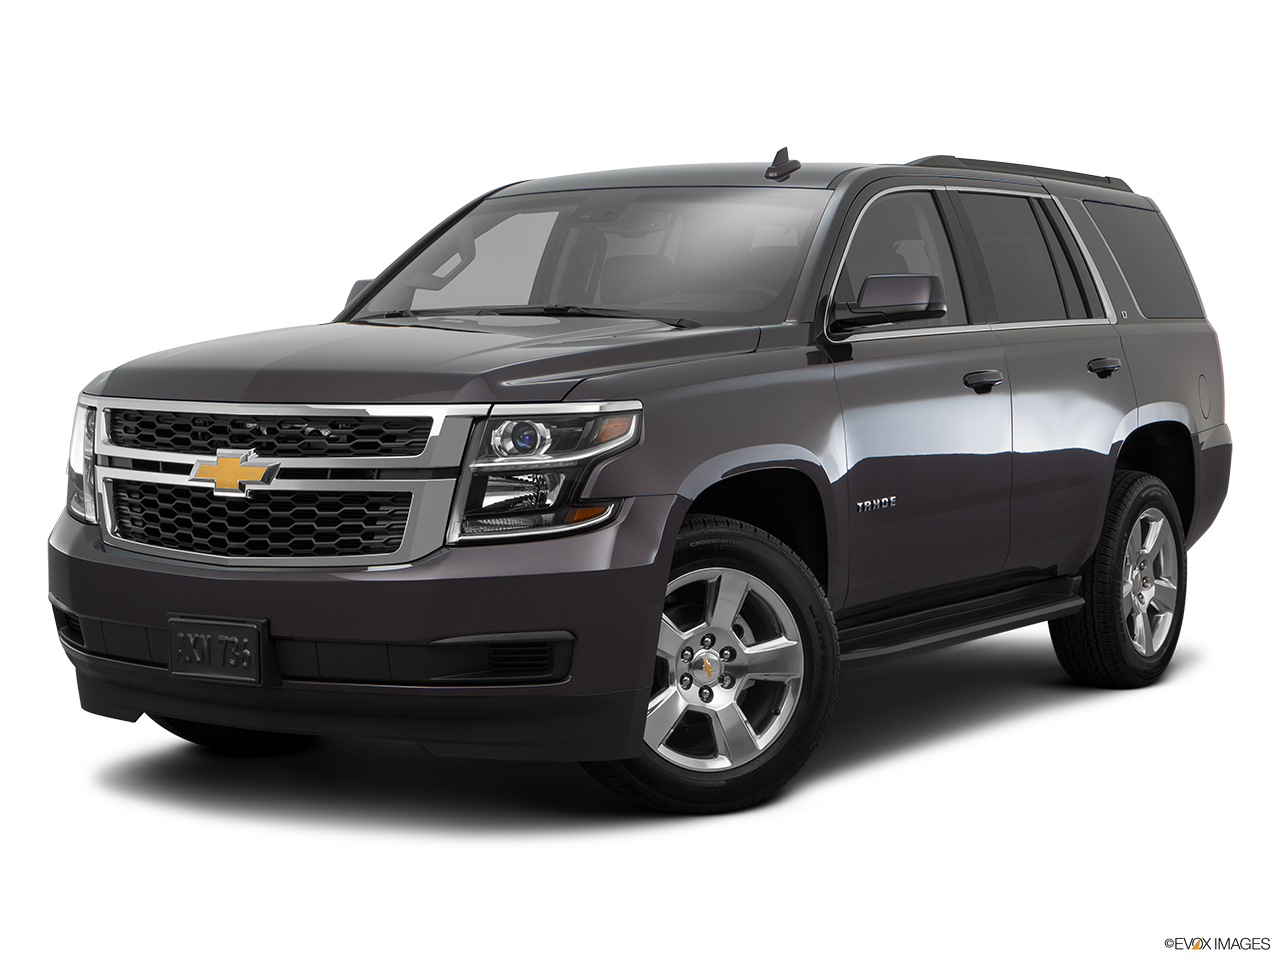 2016 chevrolet tahoe dealer serving chicago webb chevrolet oak lawn. Black Bedroom Furniture Sets. Home Design Ideas